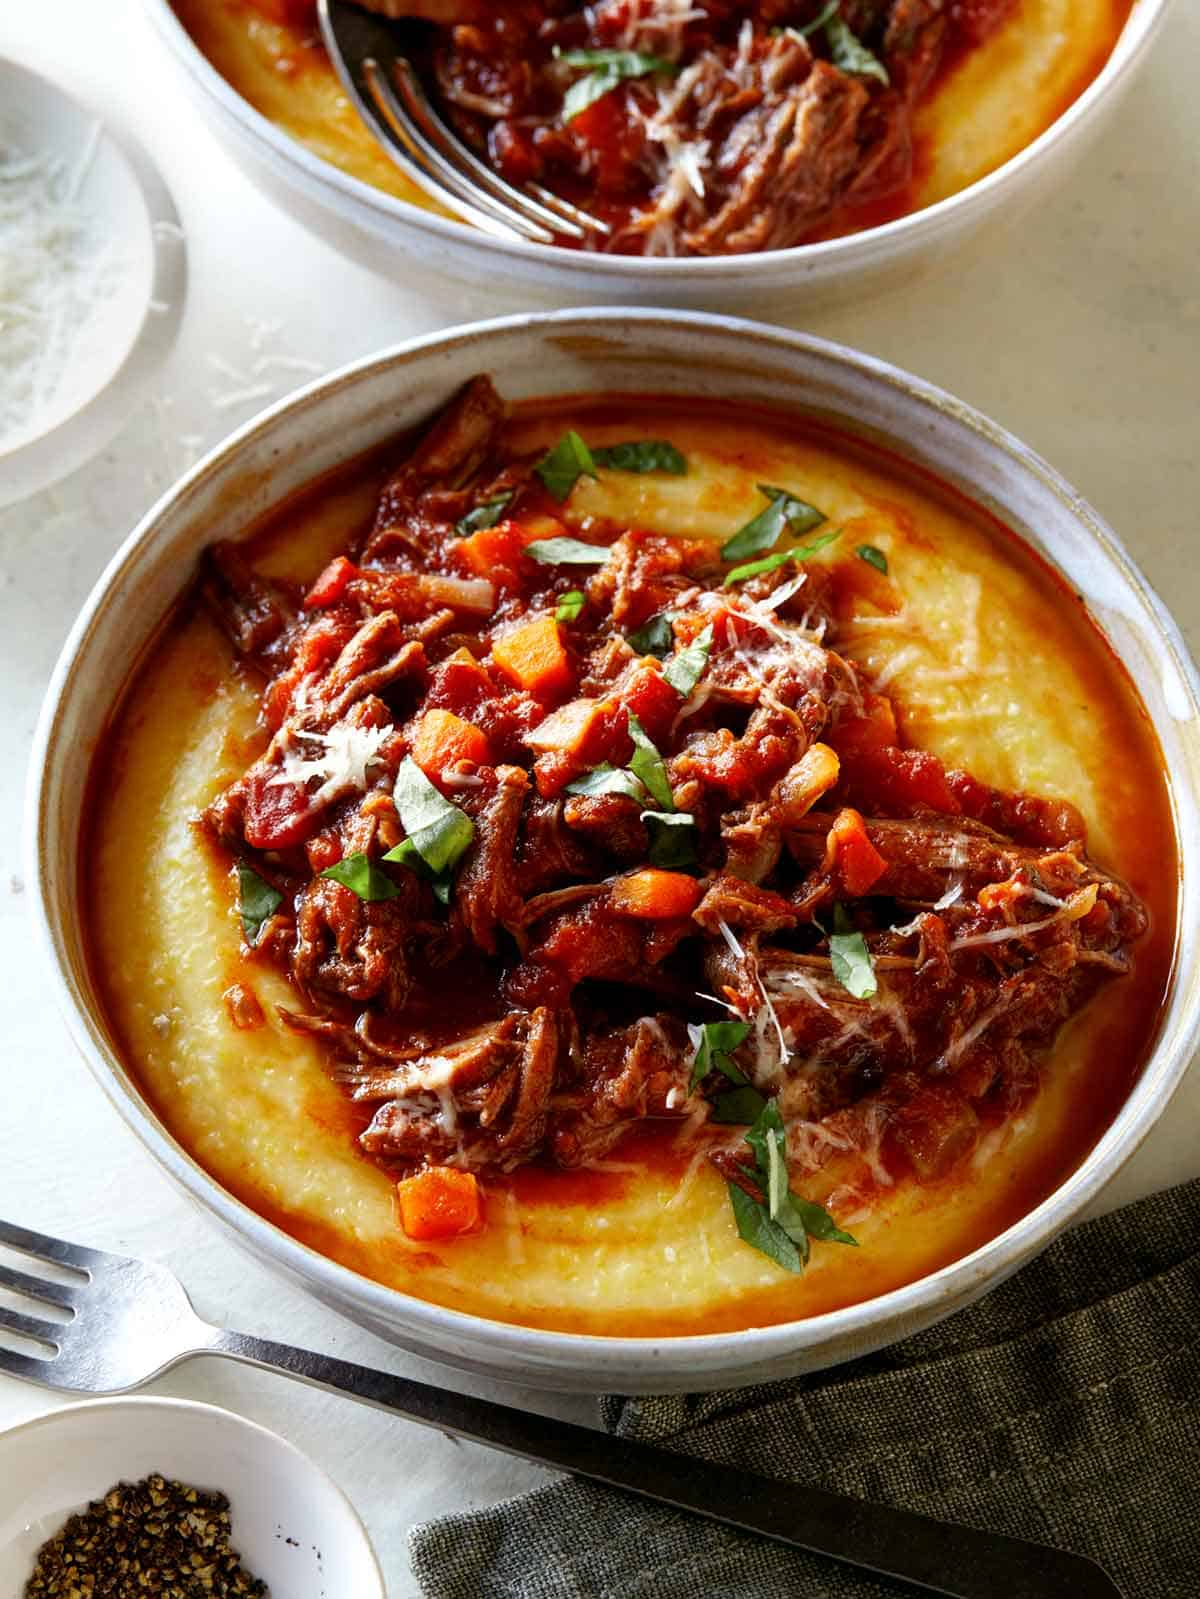 Braised beef ragu in two bowls with forks on the side.